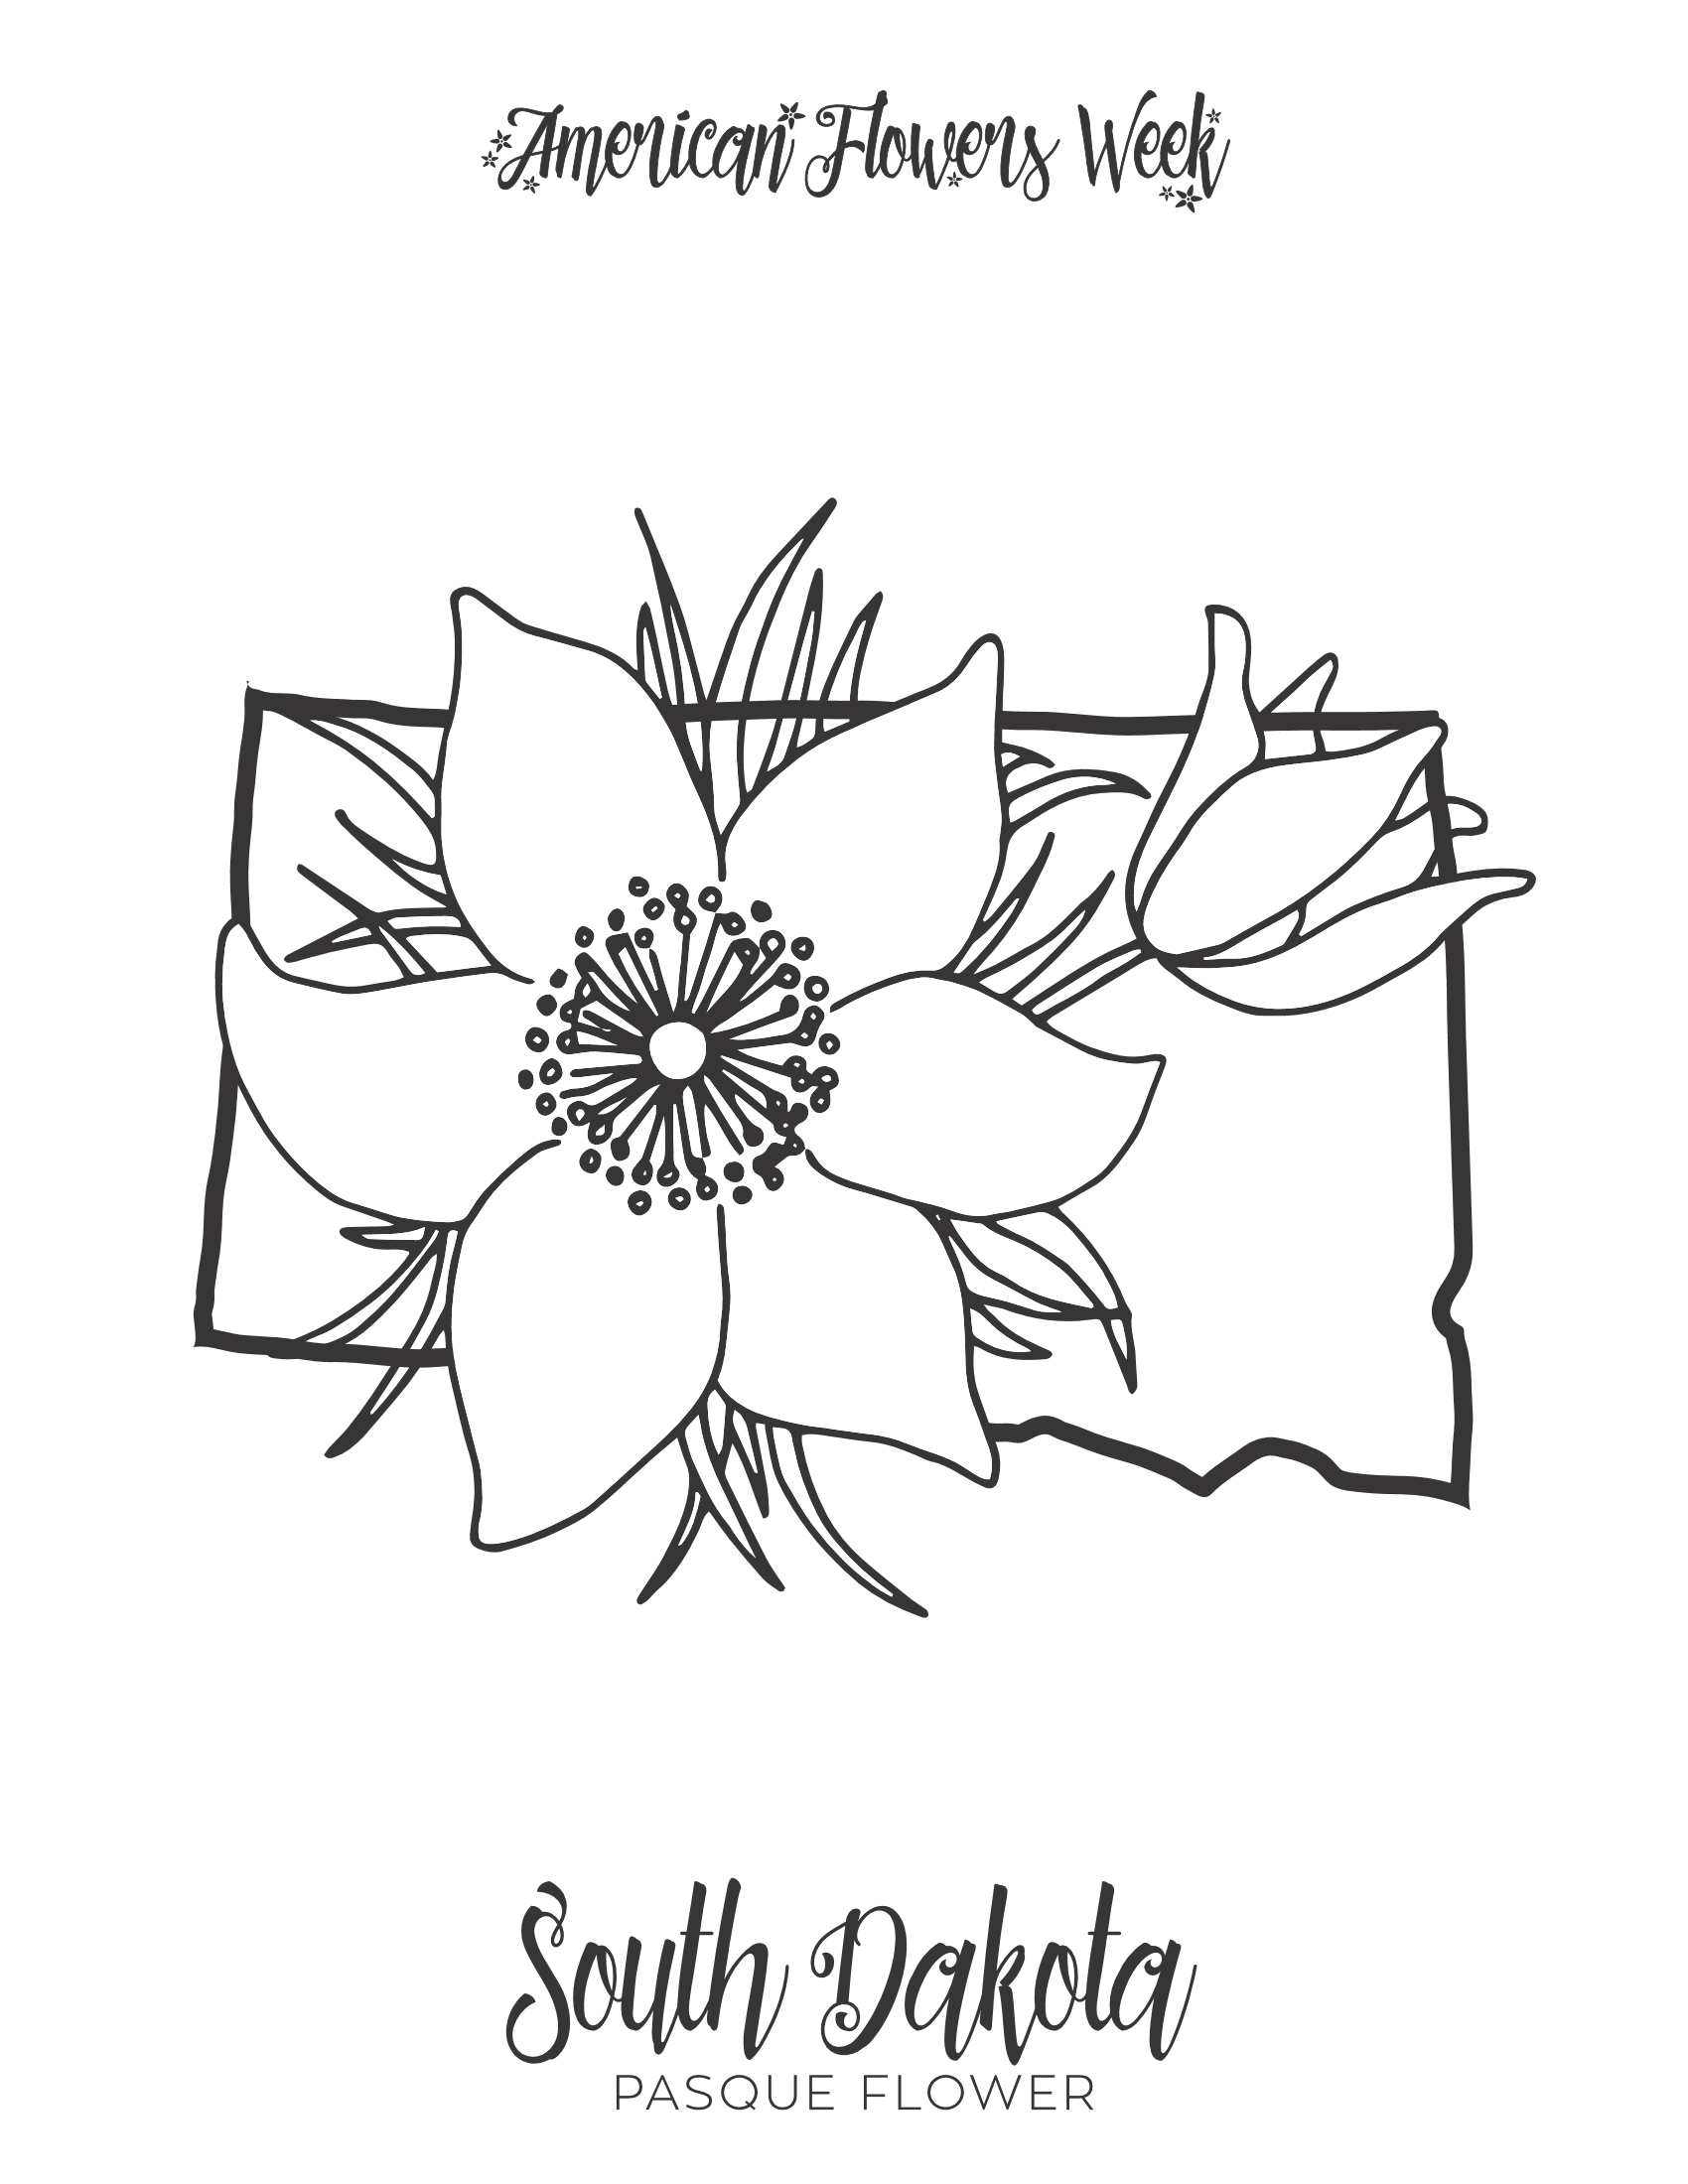 michigan state flower oregon state flower coloring page free printable michigan flower state